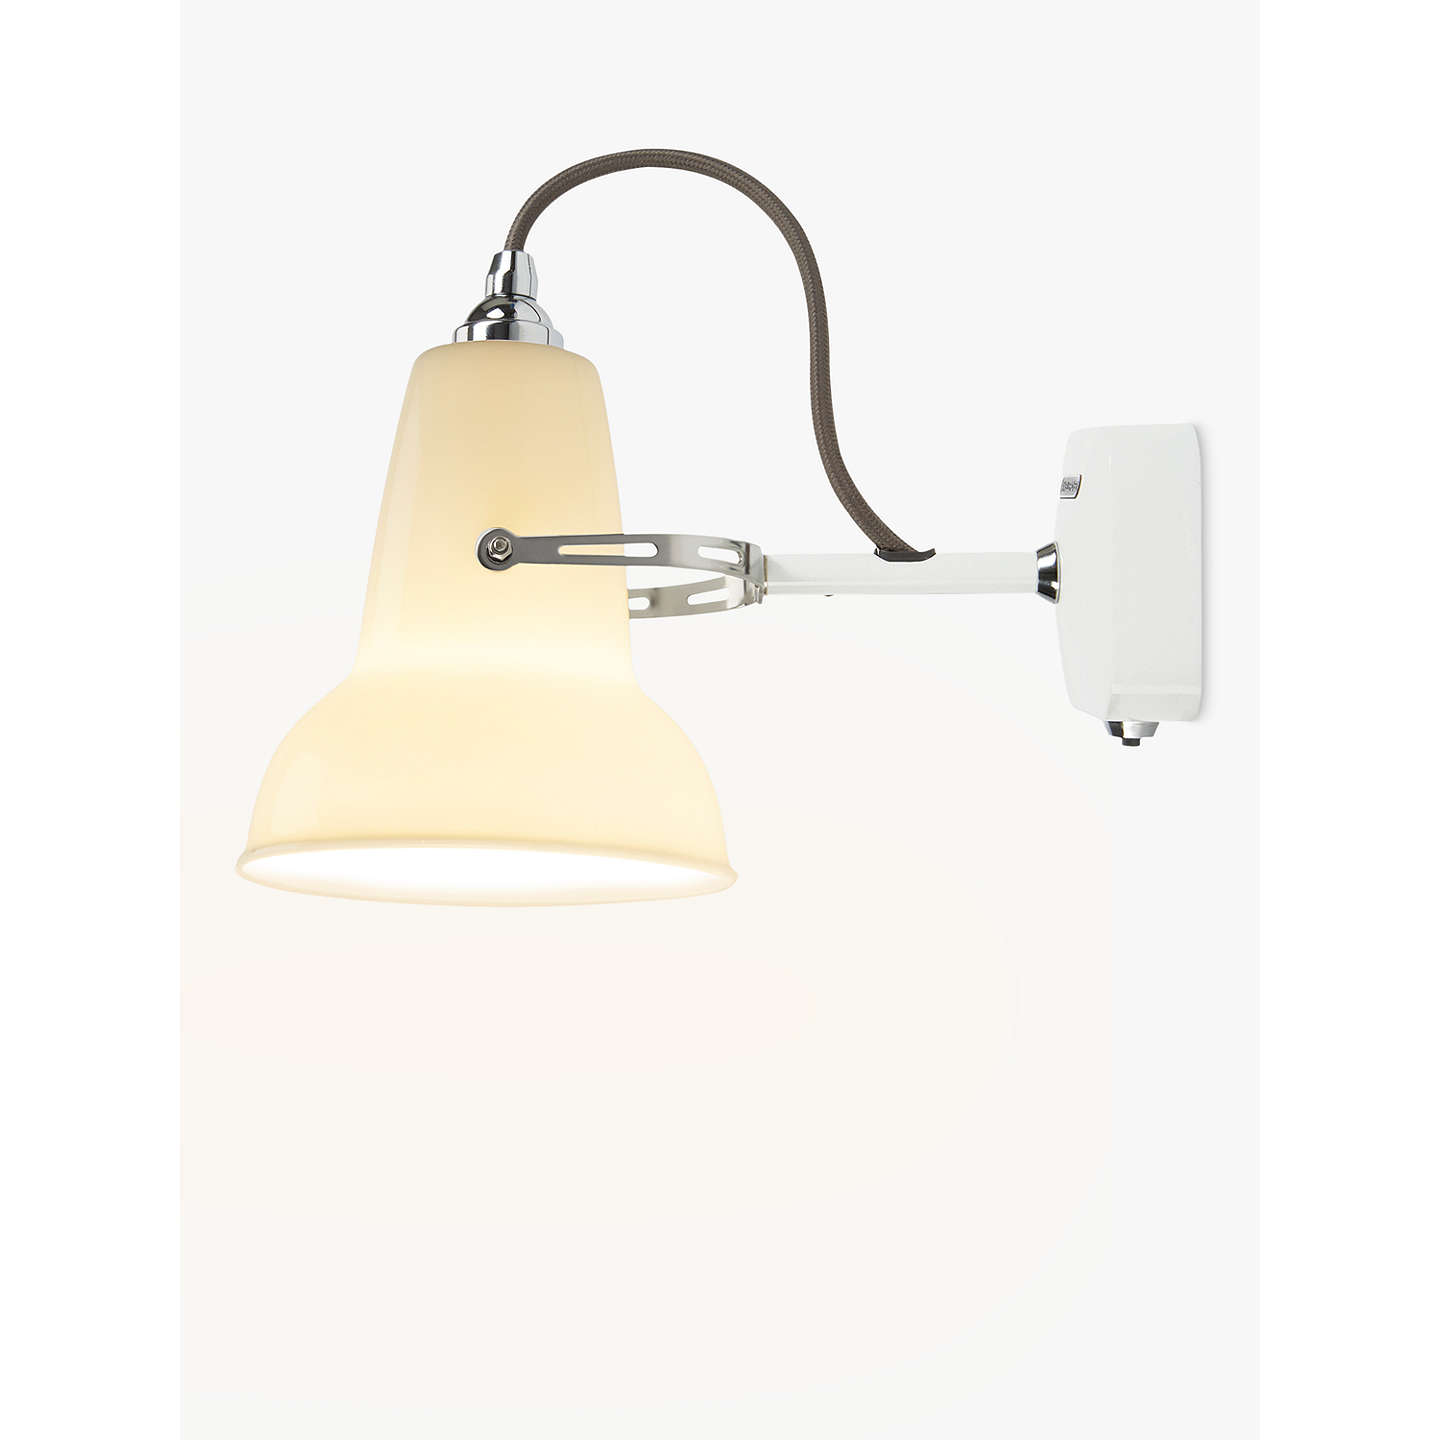 Anglepoise 1227 mini ceramic wall light white at john lewis buyanglepoise 1227 mini ceramic wall light white online at johnlewis mozeypictures Image collections